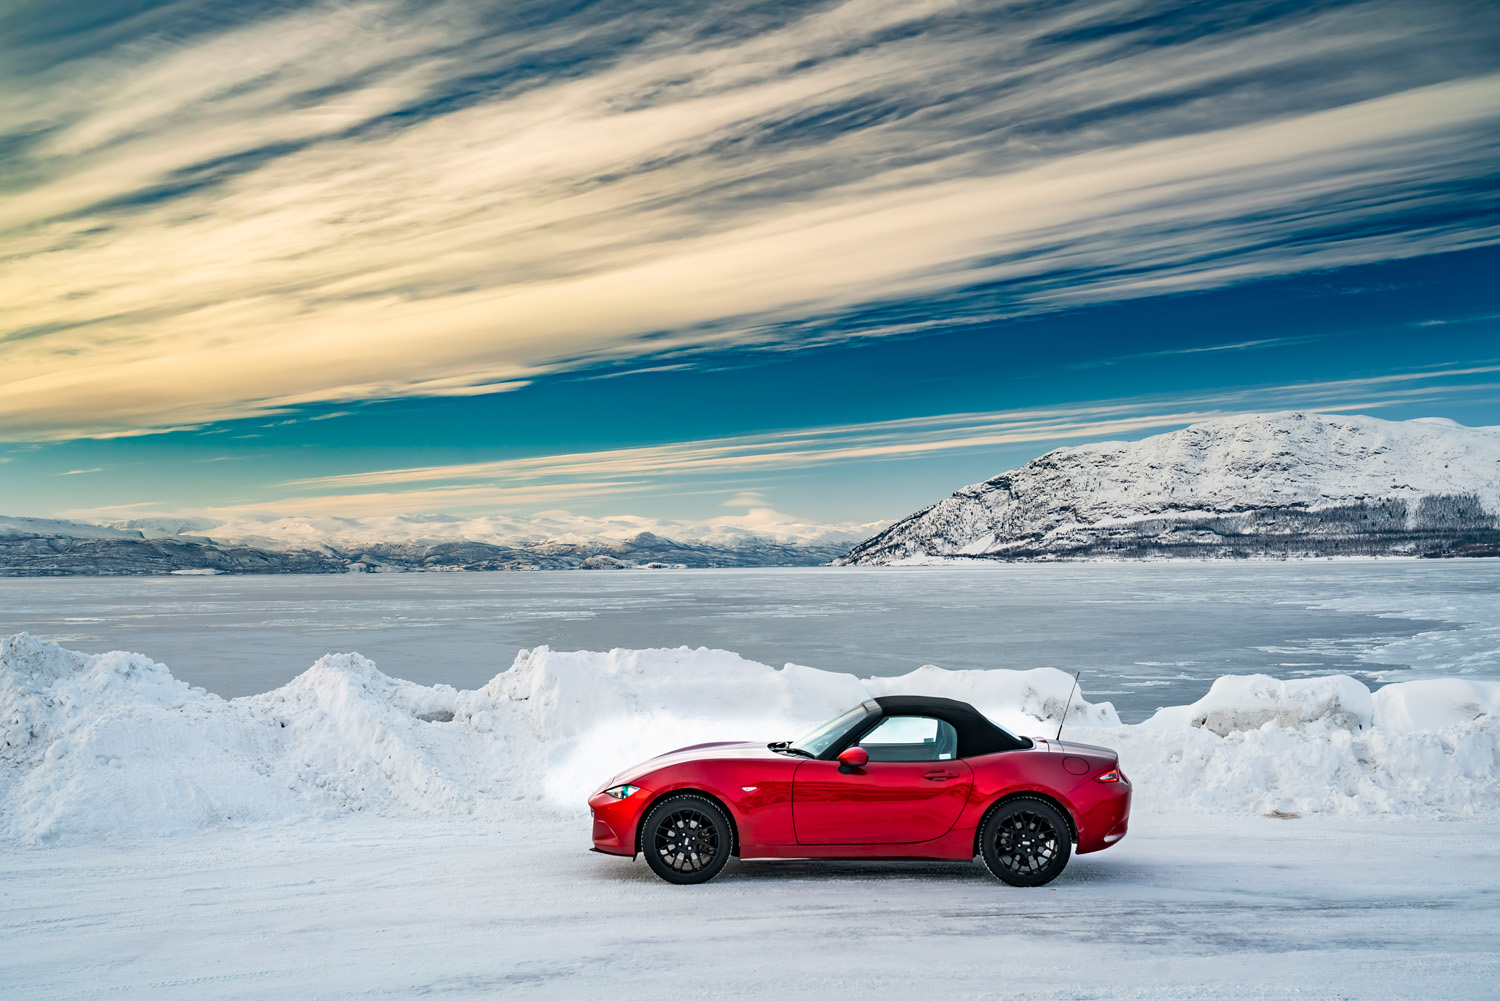 We Still Have Lot Of Snow On Ground But >> Snow Ice And Sports Cars Influx